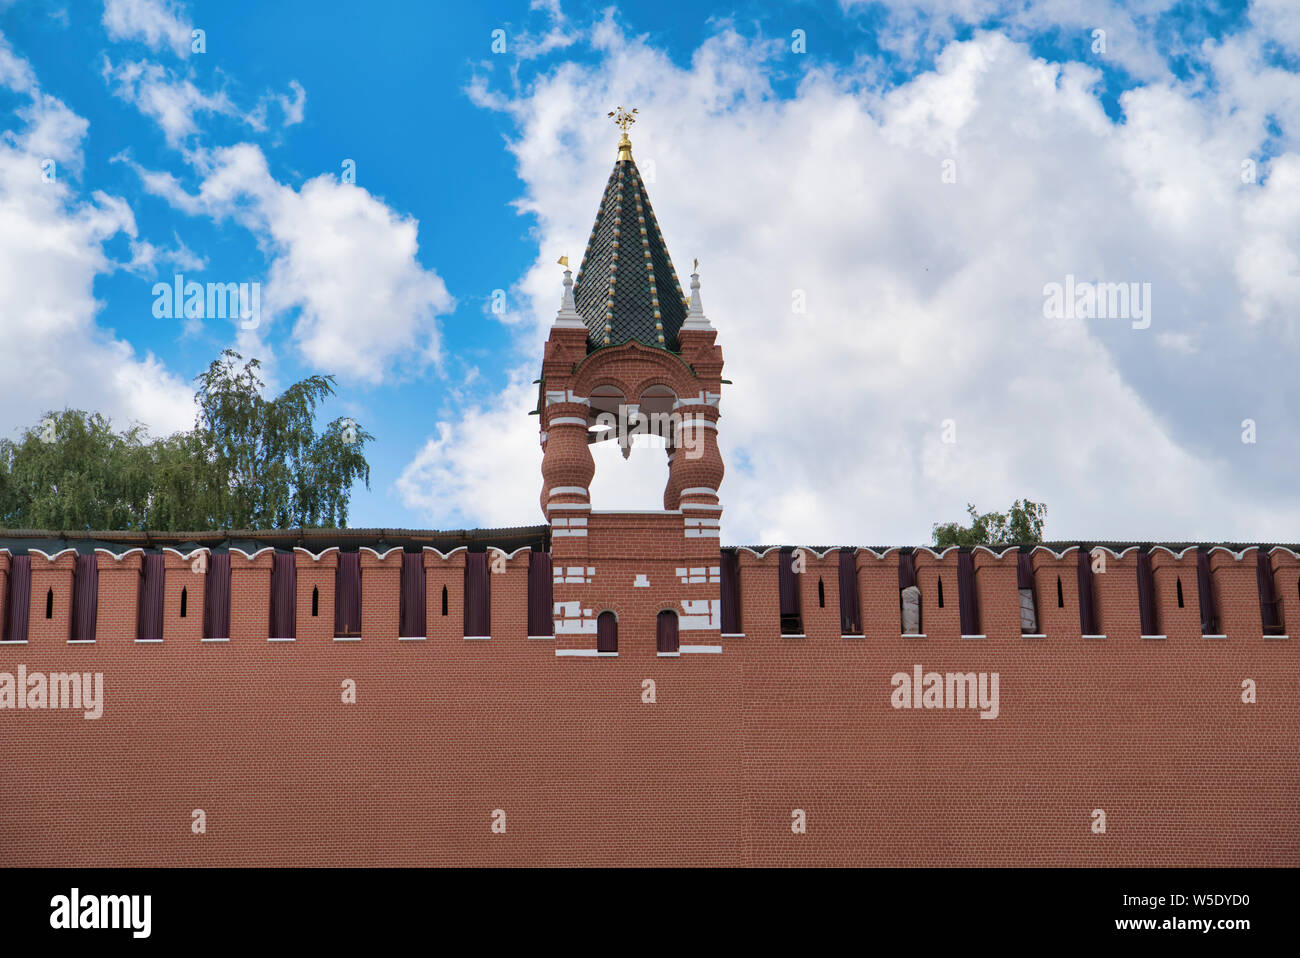 Tsar's Tower; eastern wall; time; Kremlin; Red Square; historical, landmark, building; Kitai-gorod; architecture; Moscow; Russia; city; tourism; trave Stock Photo